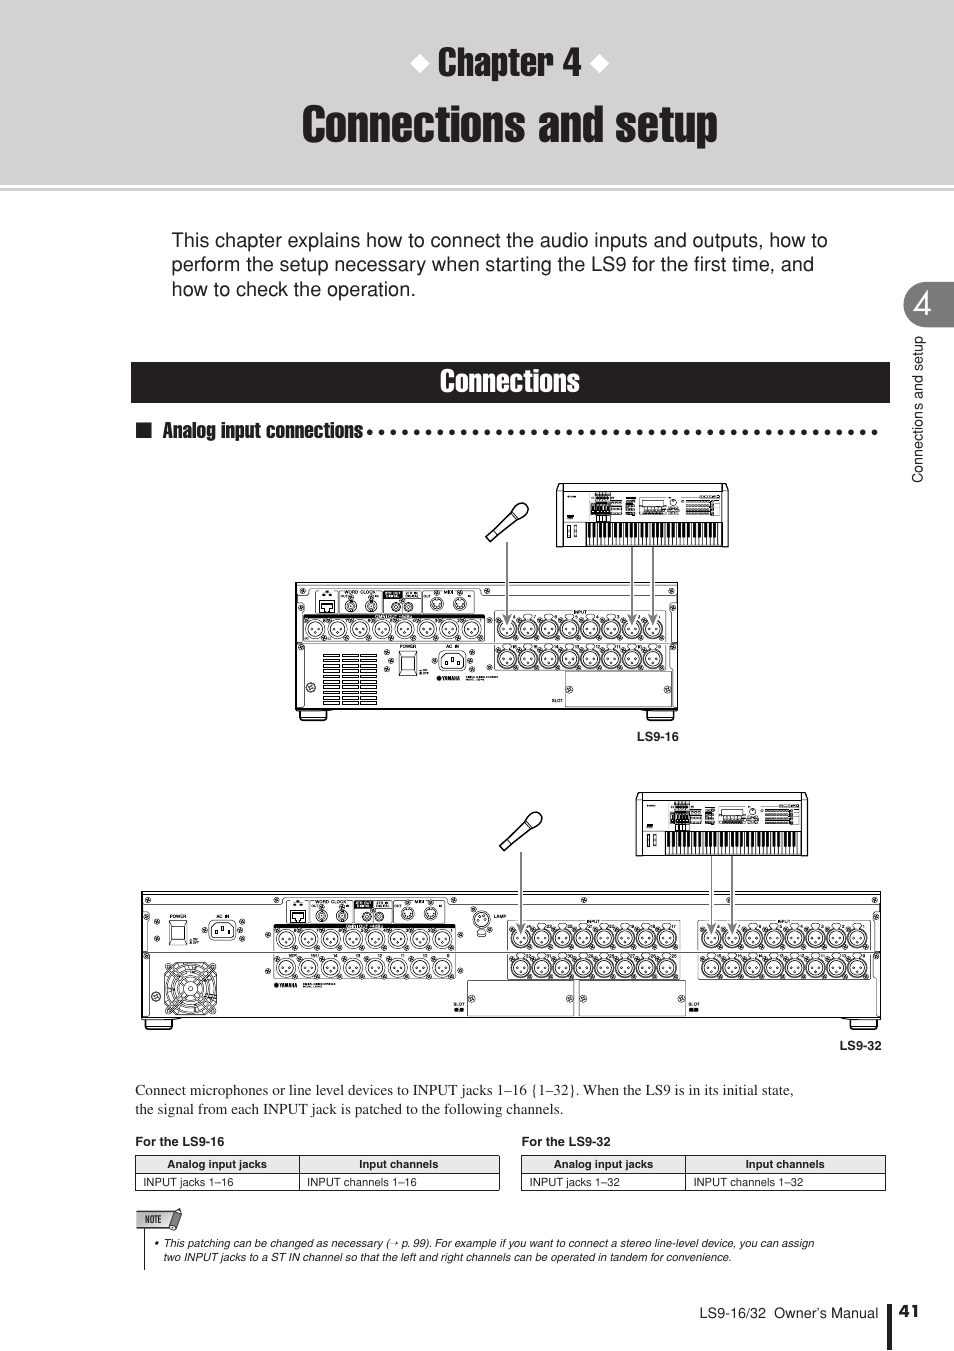 ... Array - connections and setup connections chapter 4 yamaha ls9 user rh  manualsdir com